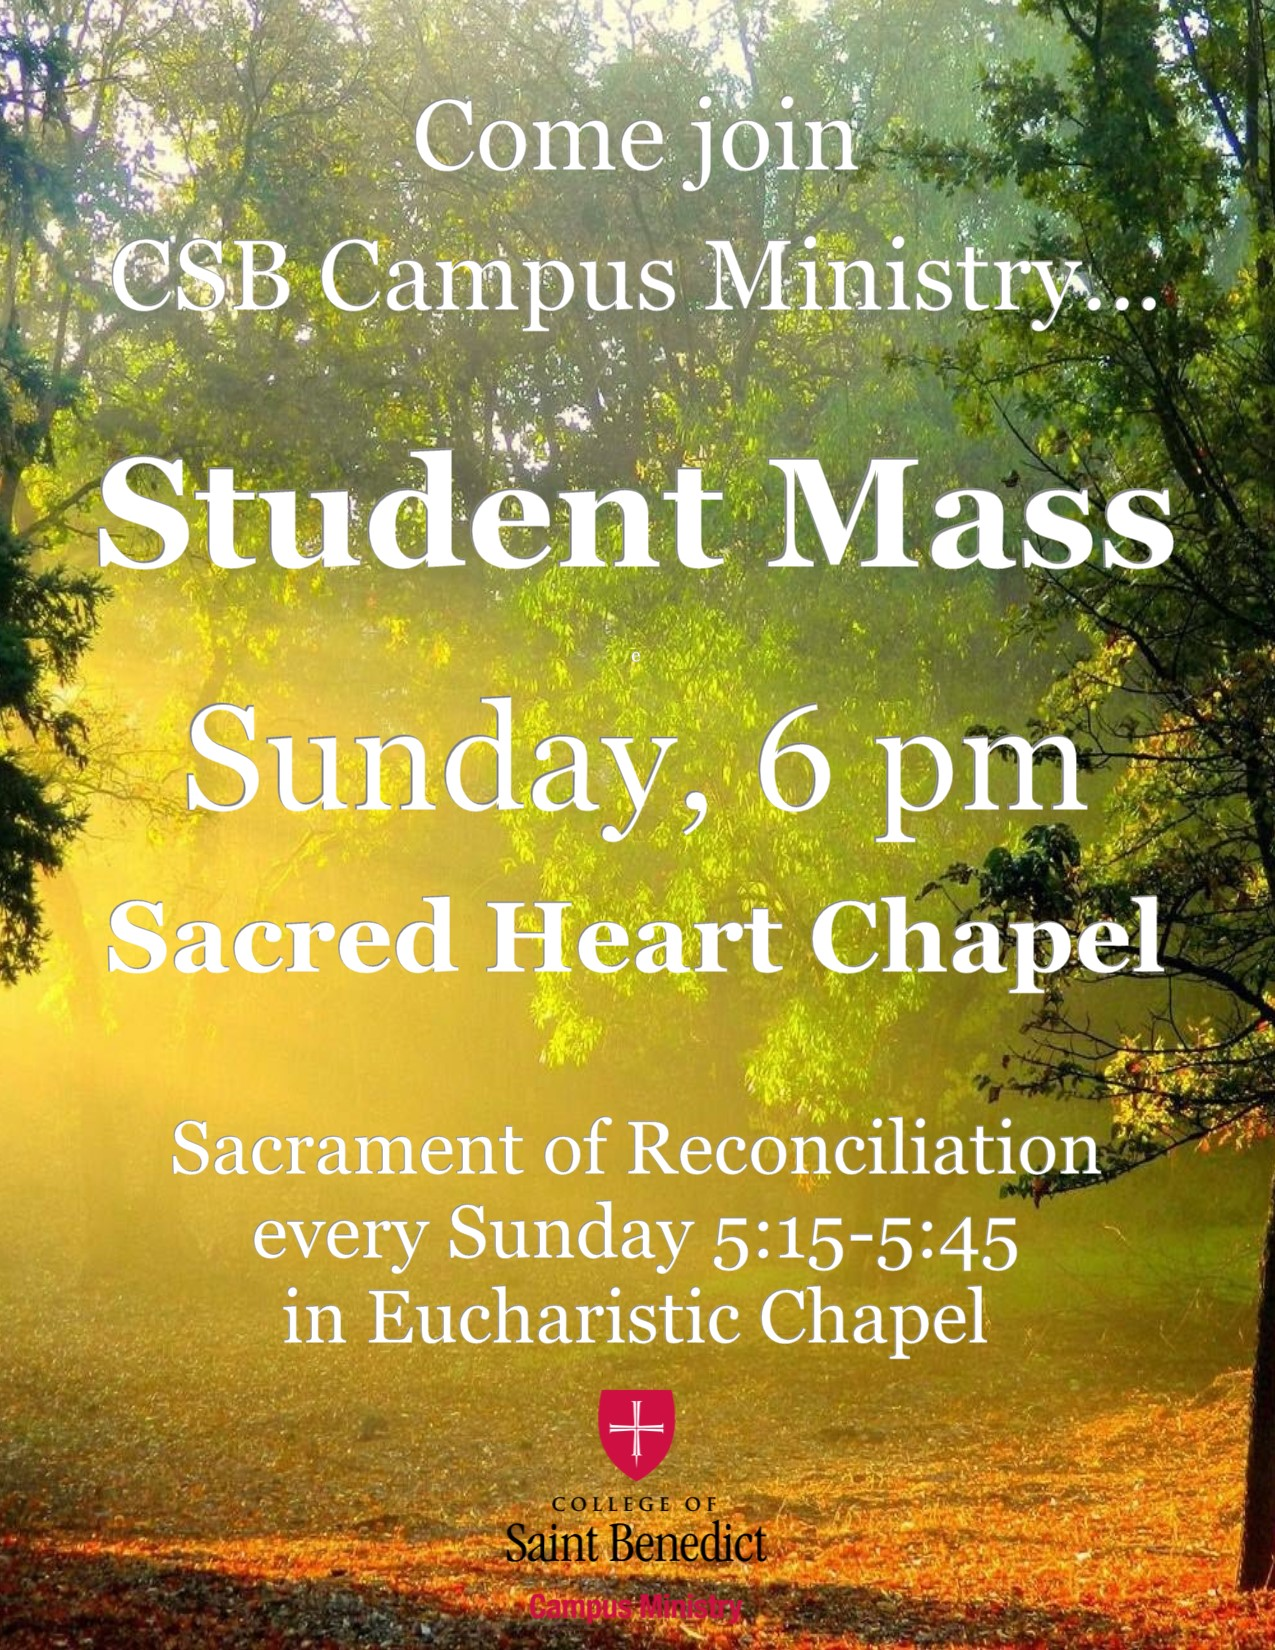 CSB Student Mass at 6pm every Sunday in Sacred Heart Chapel, with Reconciliation available from 5:15-5:45 each week before Mass.